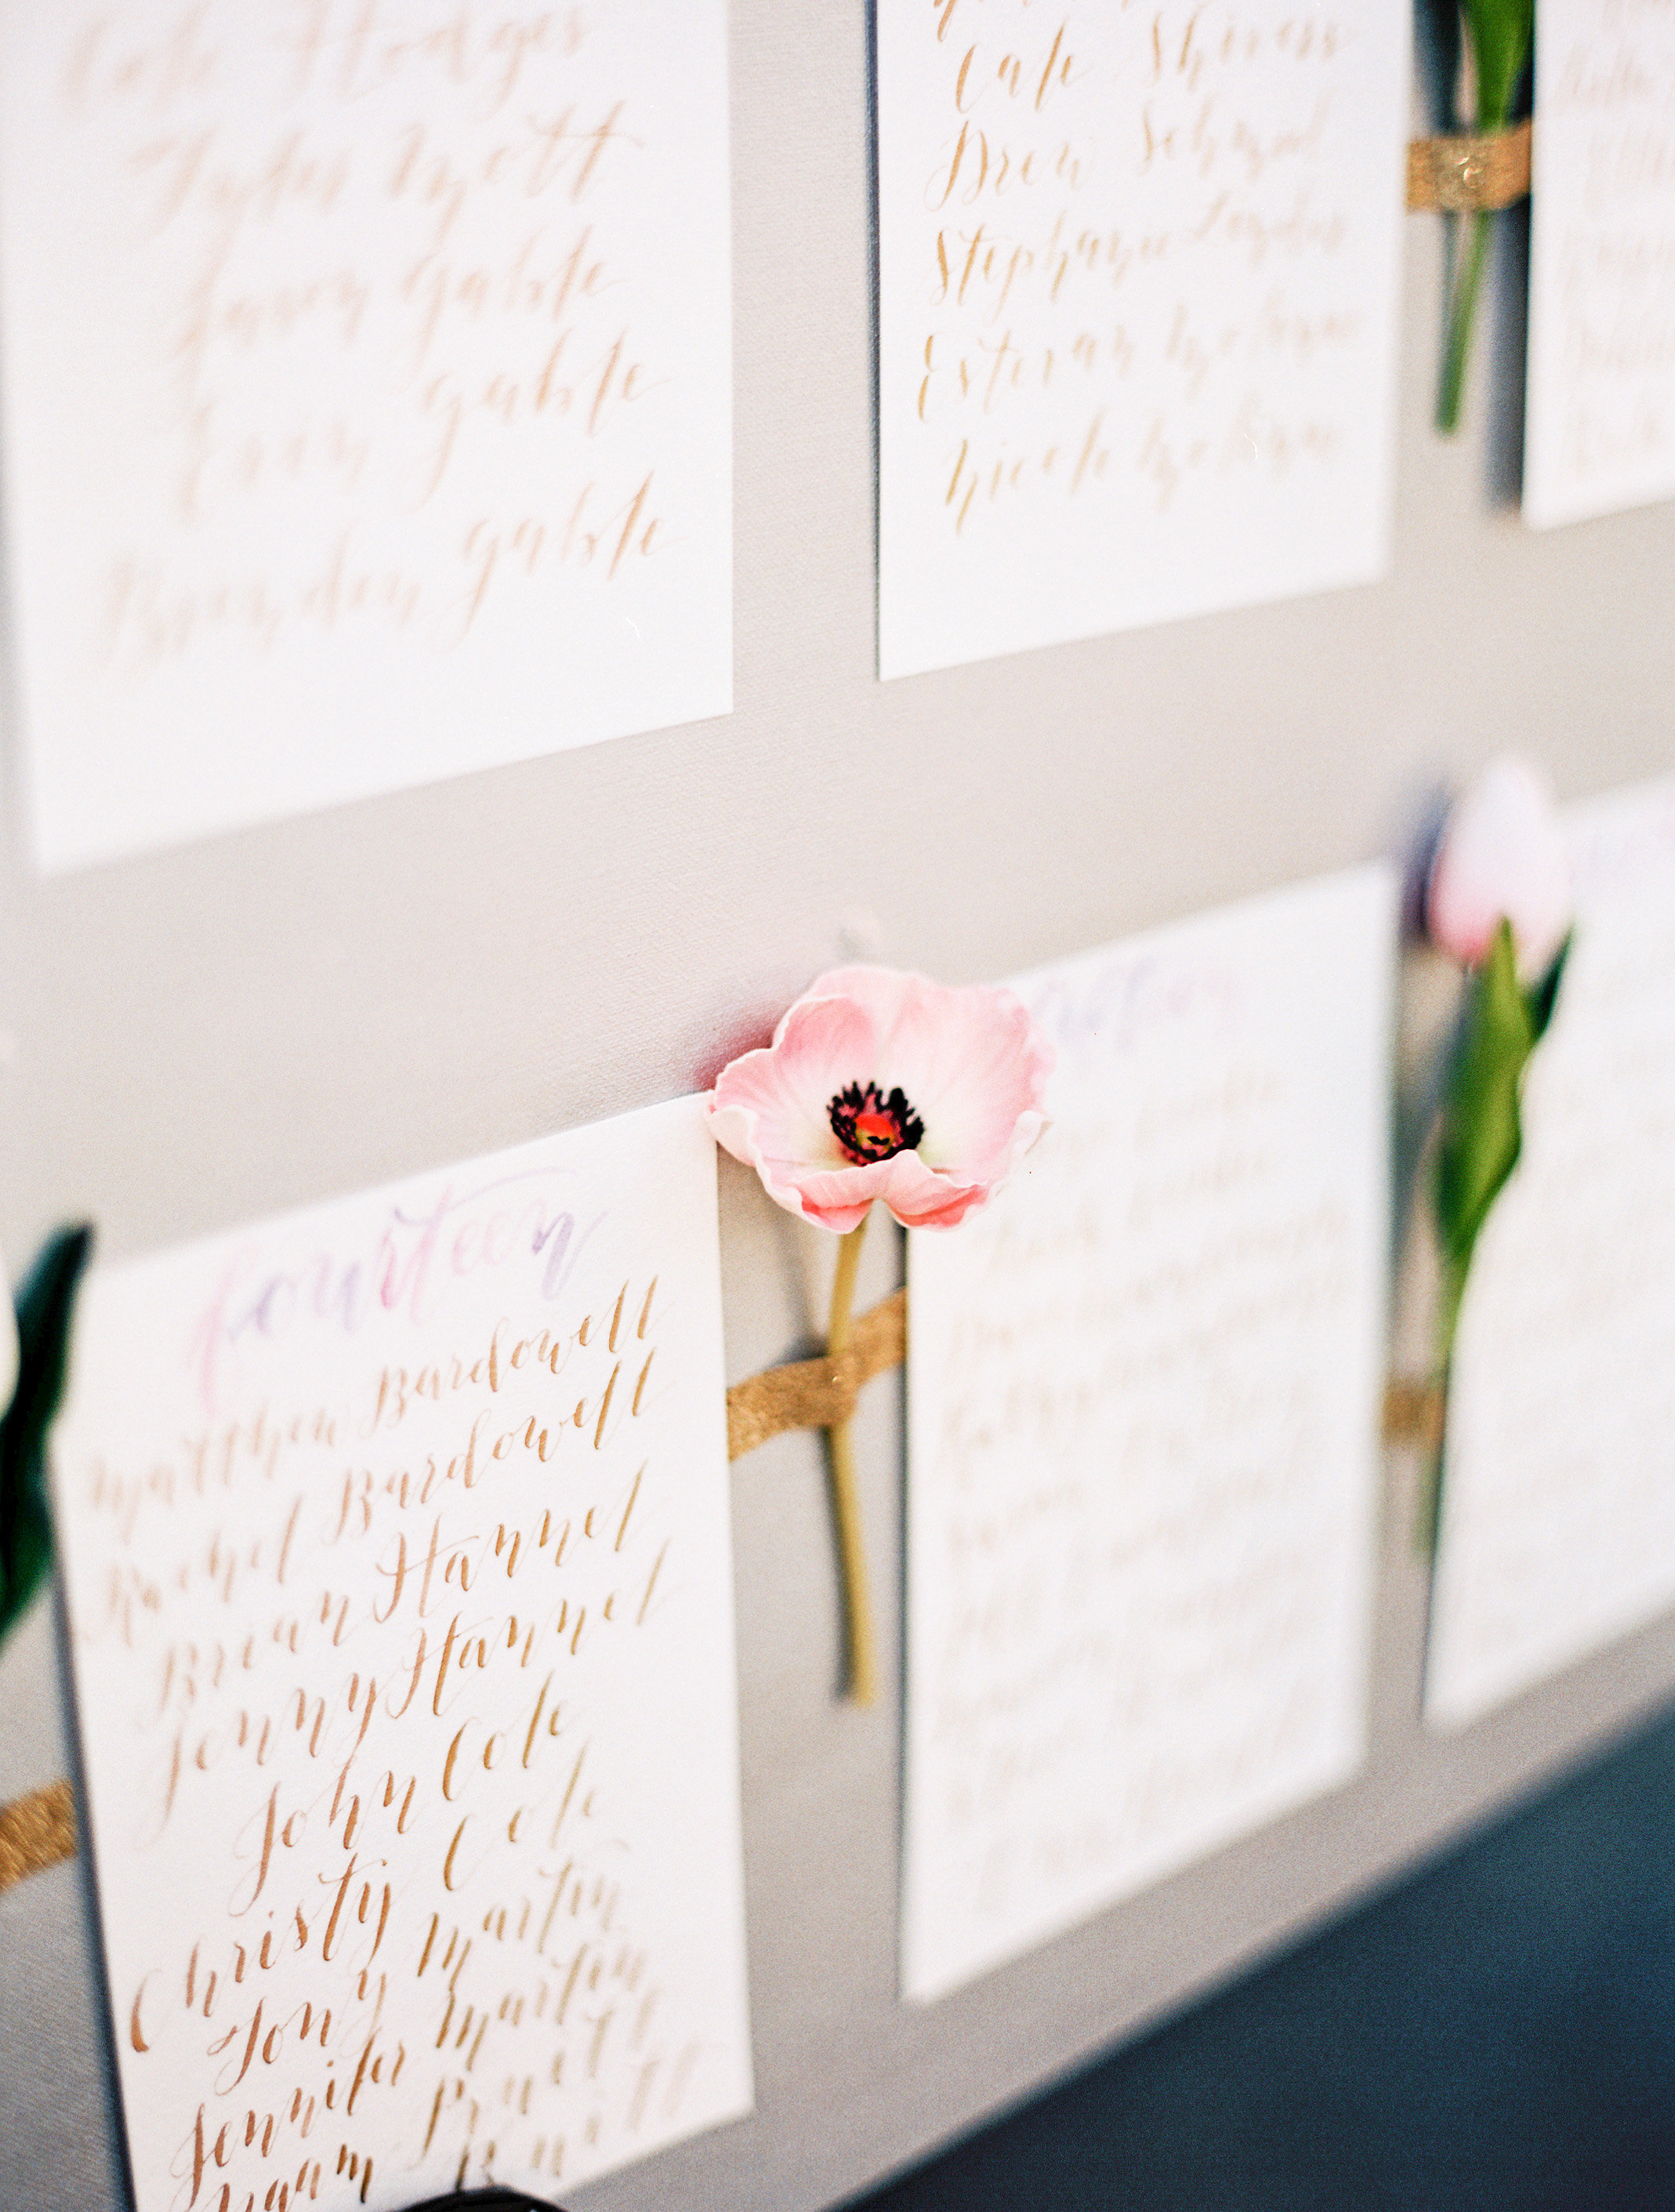 5 Unique Calligraphy Escort and Seating Chart Wedding Signs | Shotgunning for Love Letters